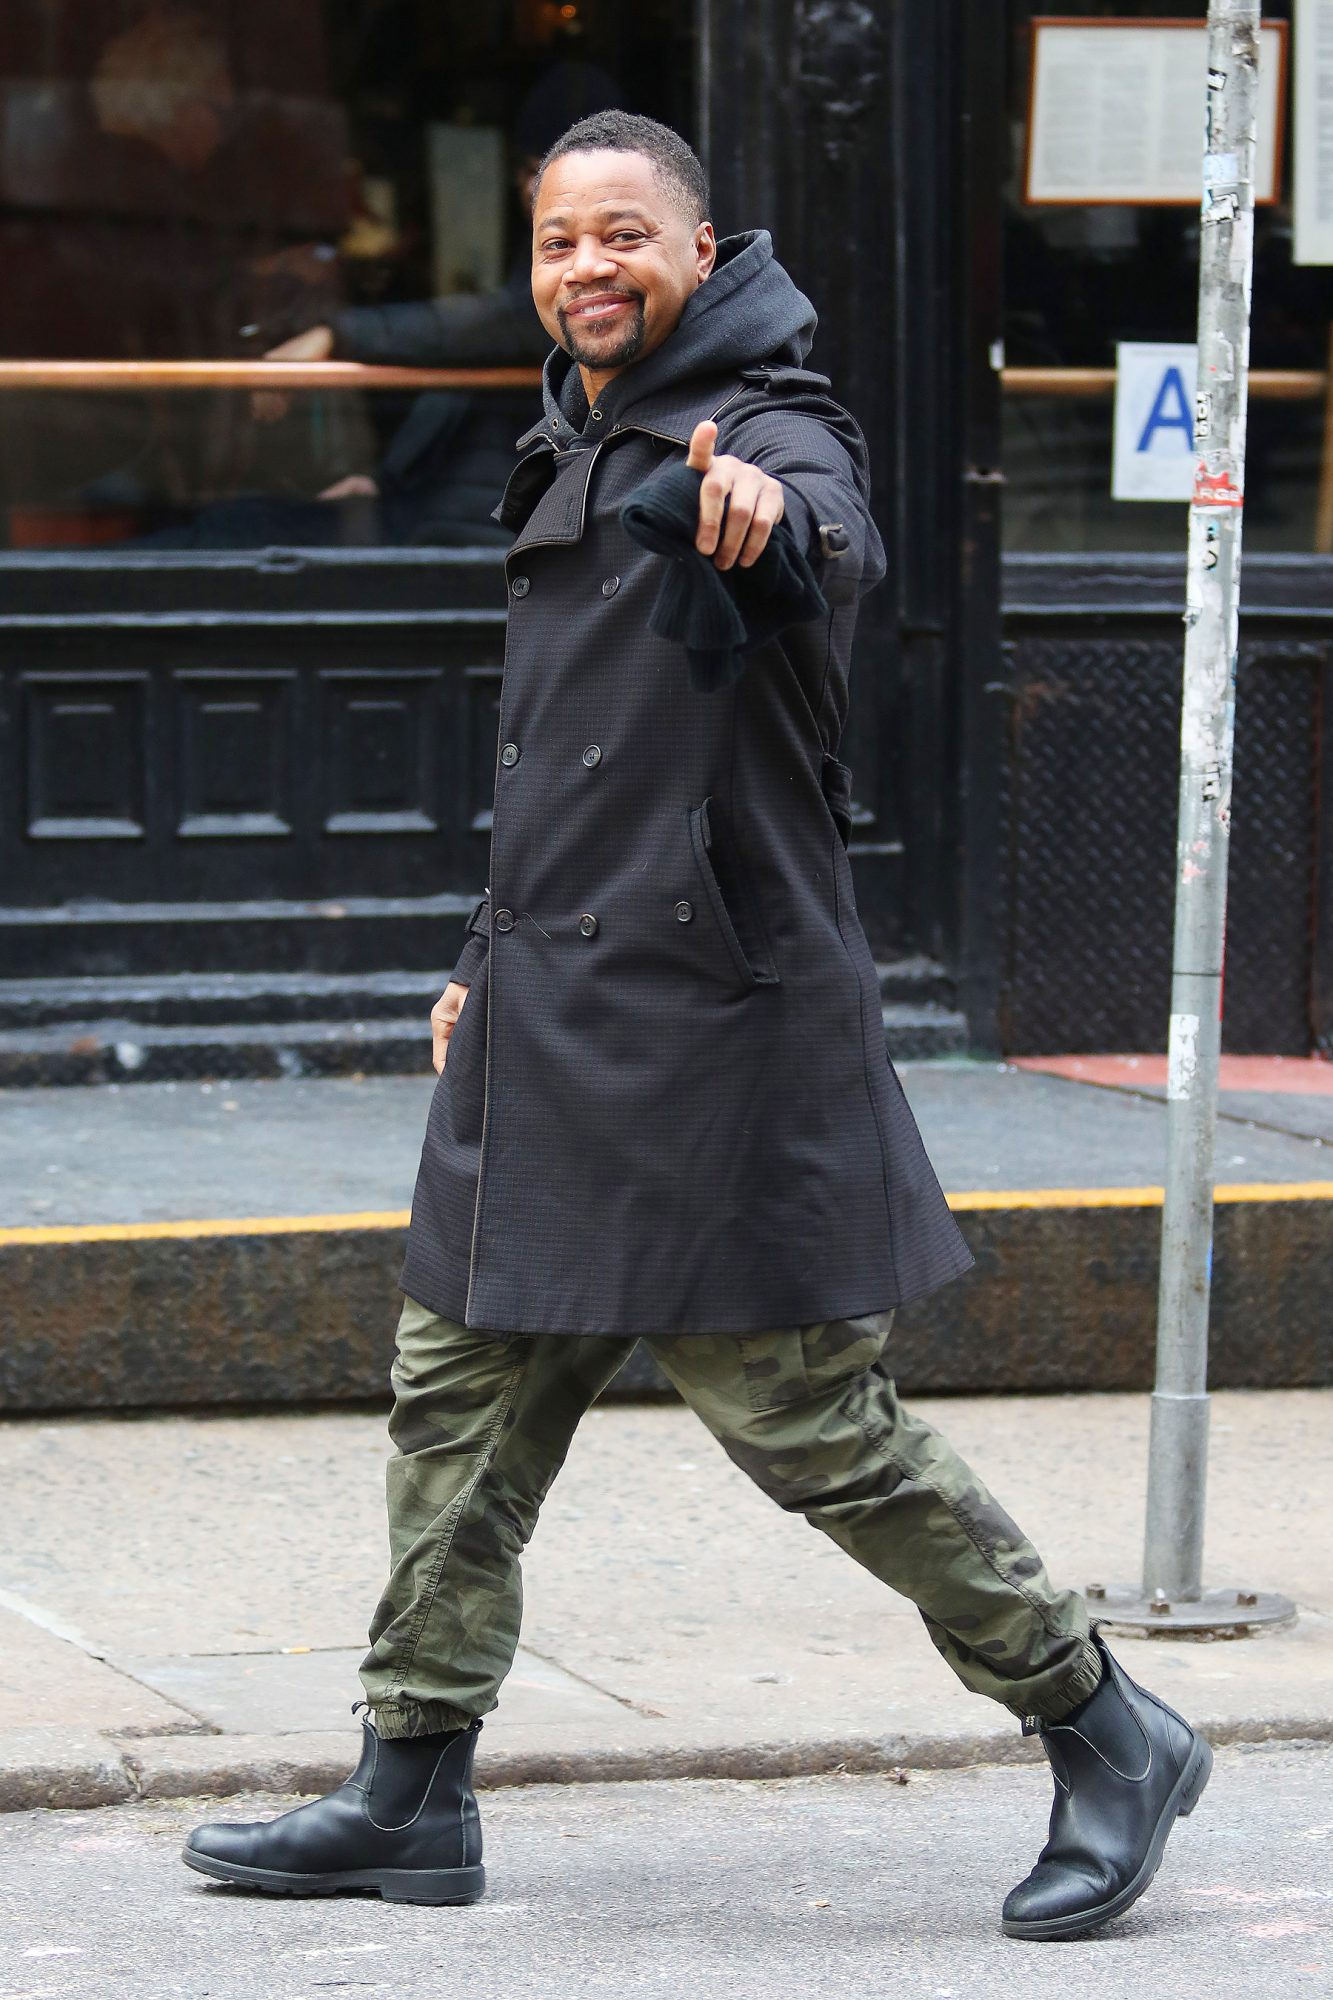 Cuba Gooding Jr. Is All Smiles In New York City